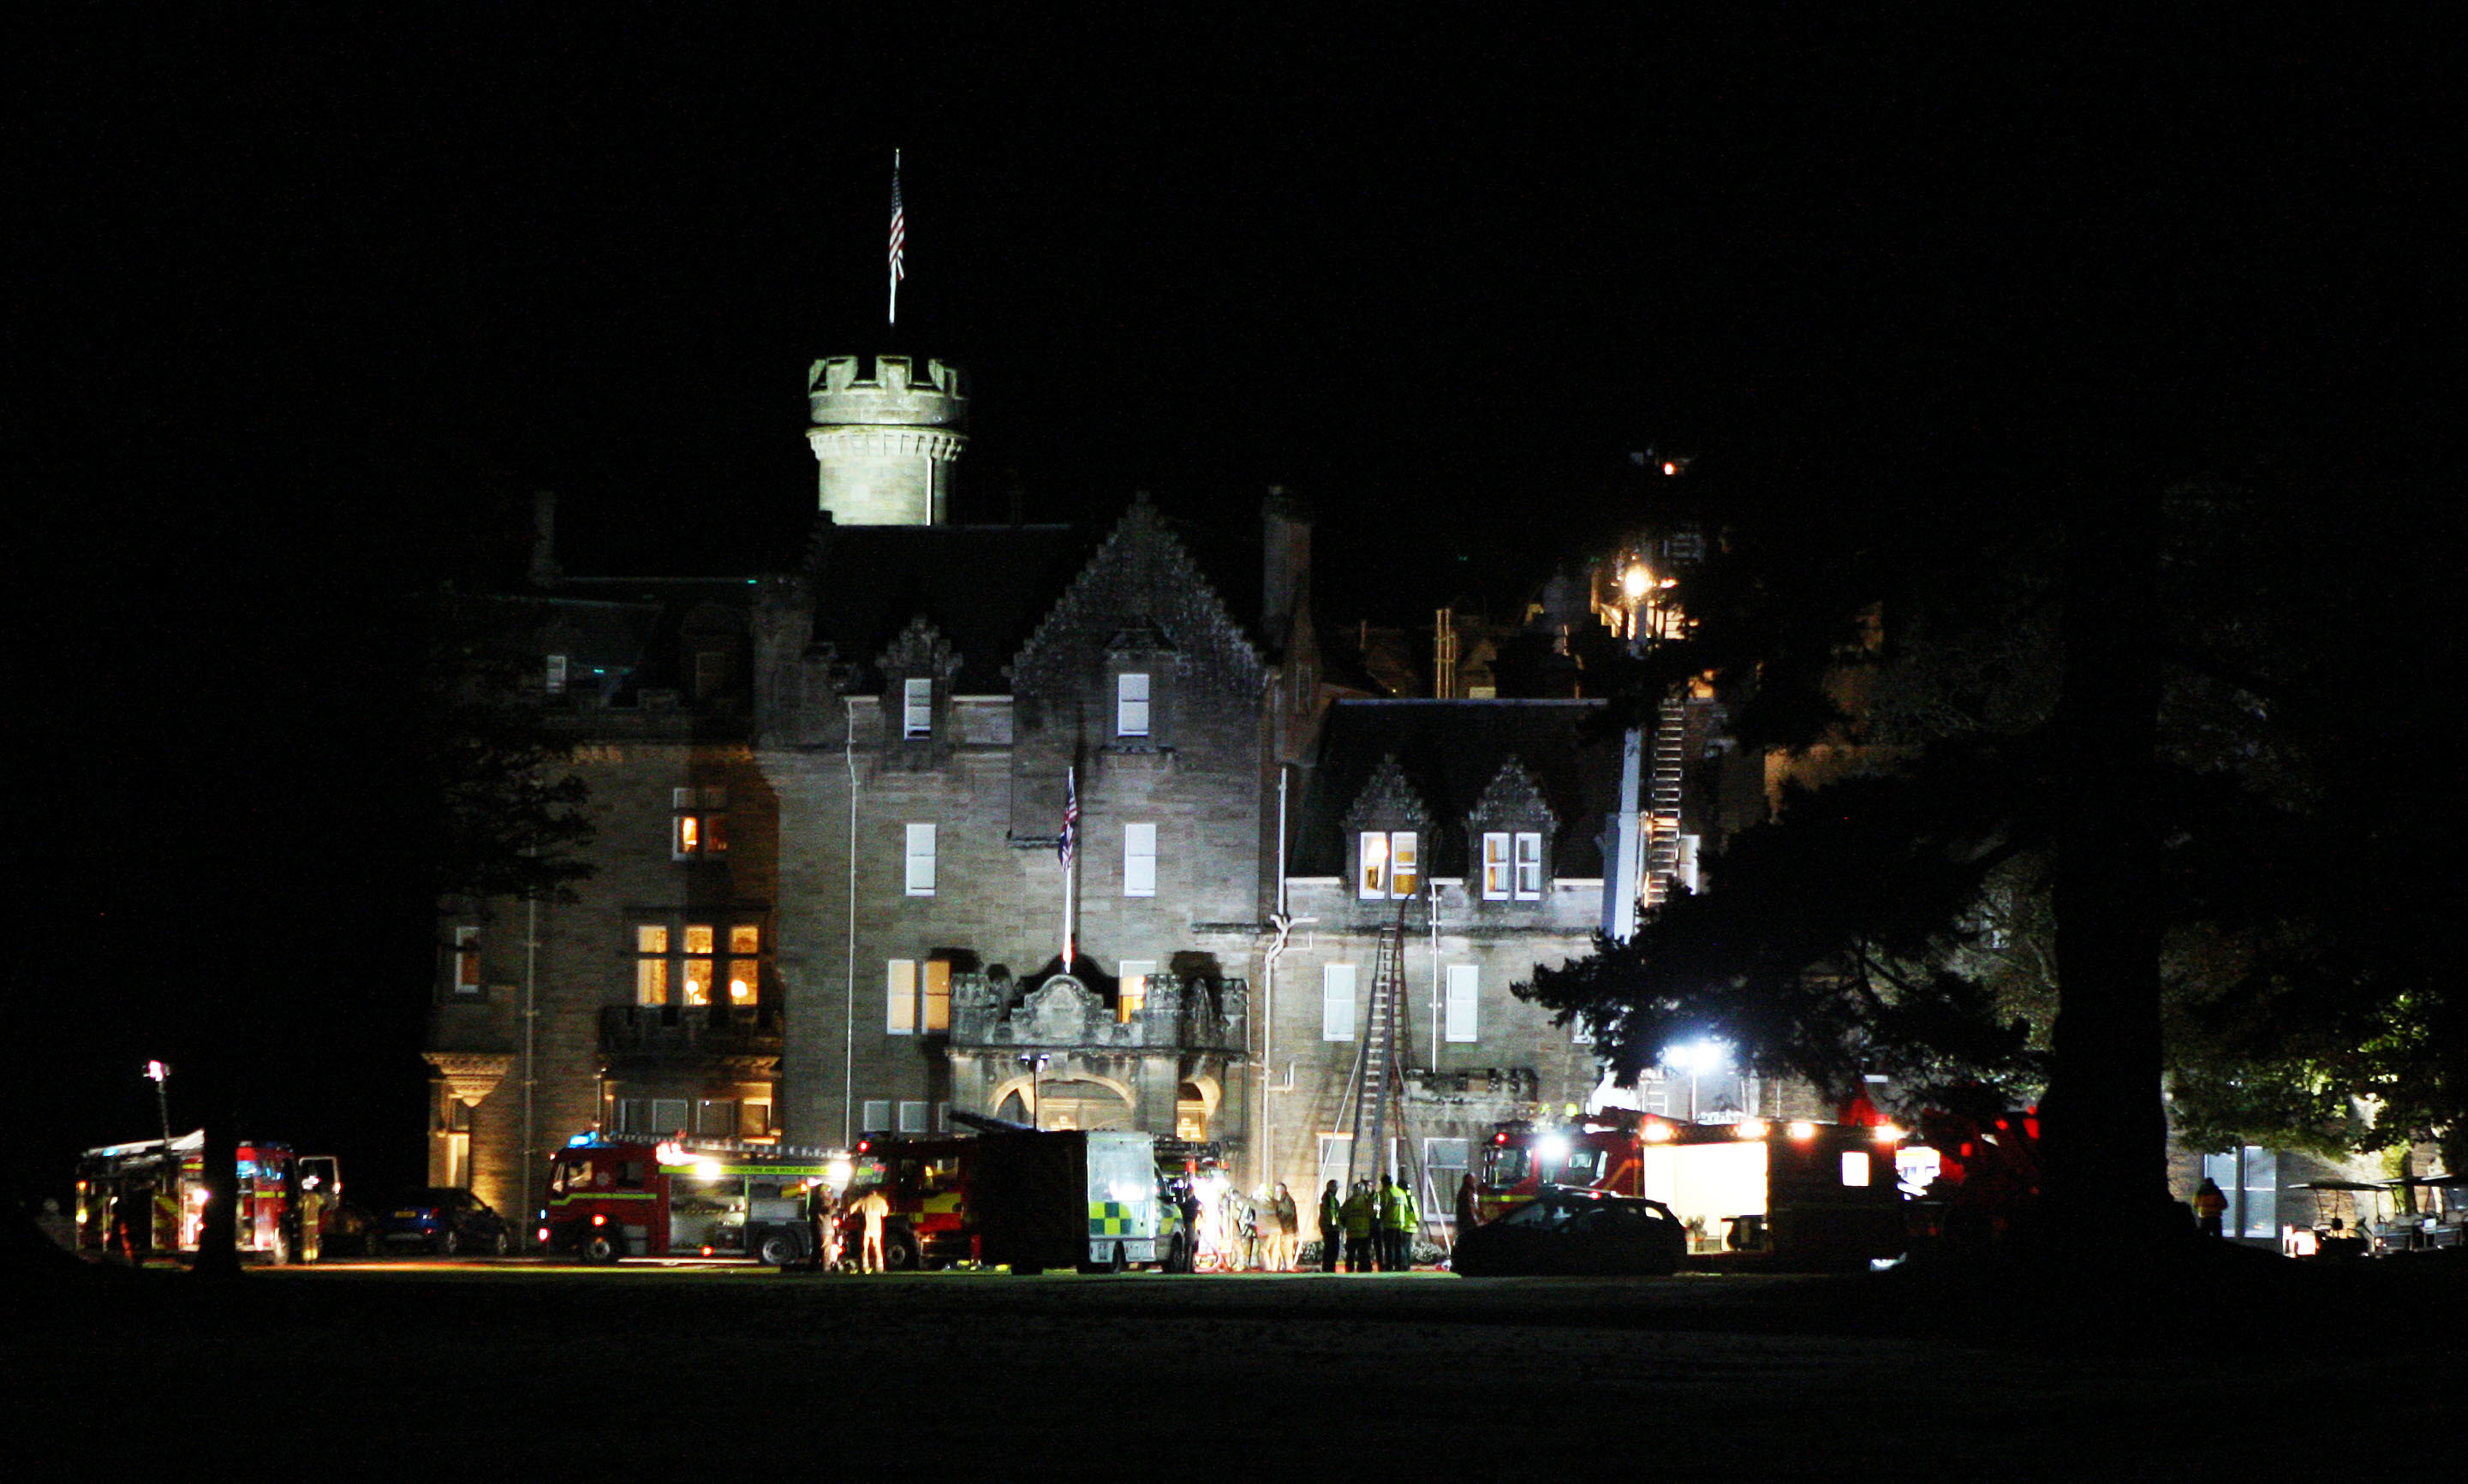 Emergency services attended a fire at Skibo Castle.